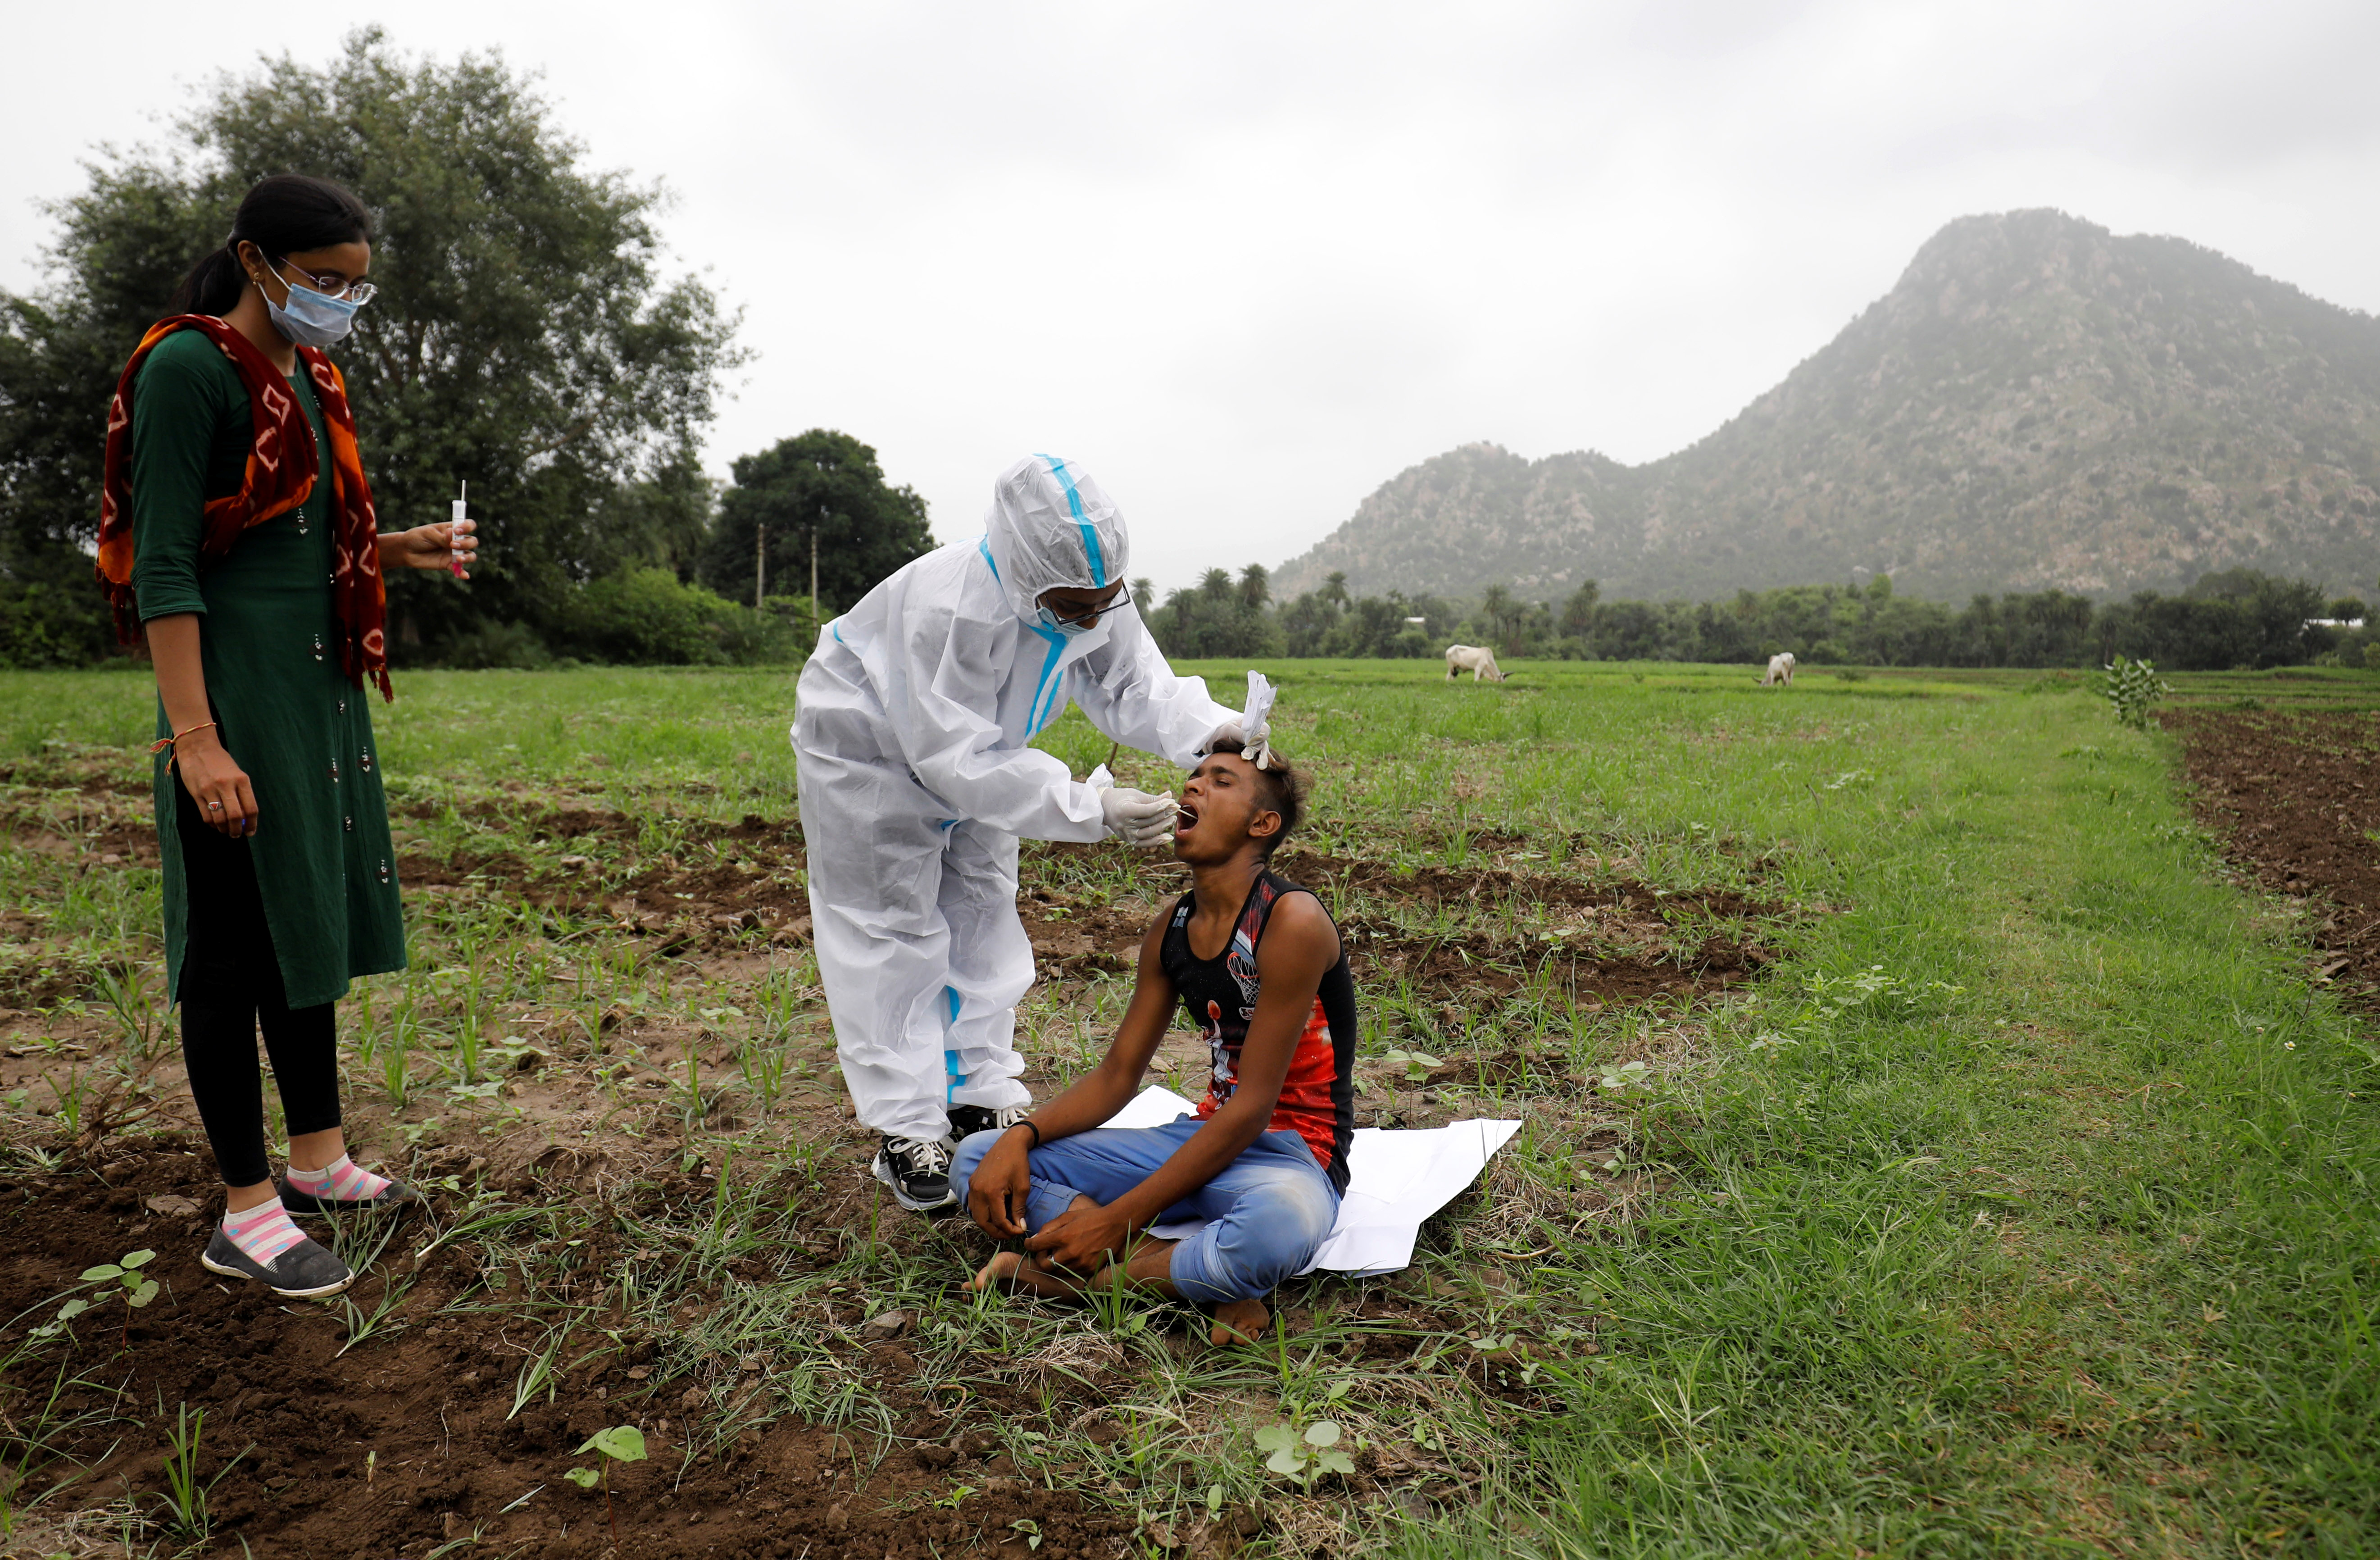 Healthcare worker Hemaben Raval collects a swab for a rapid antigen test from farmer Vinod Vajabhai Dabhi in his field, during a door-to-door vaccination drive amid the ongoing coronavirus disease (COVID-19) outbreak in Banaskantha district in the western state of Gujarat, India, July 23, 2021. REUTERS/Amit Dave